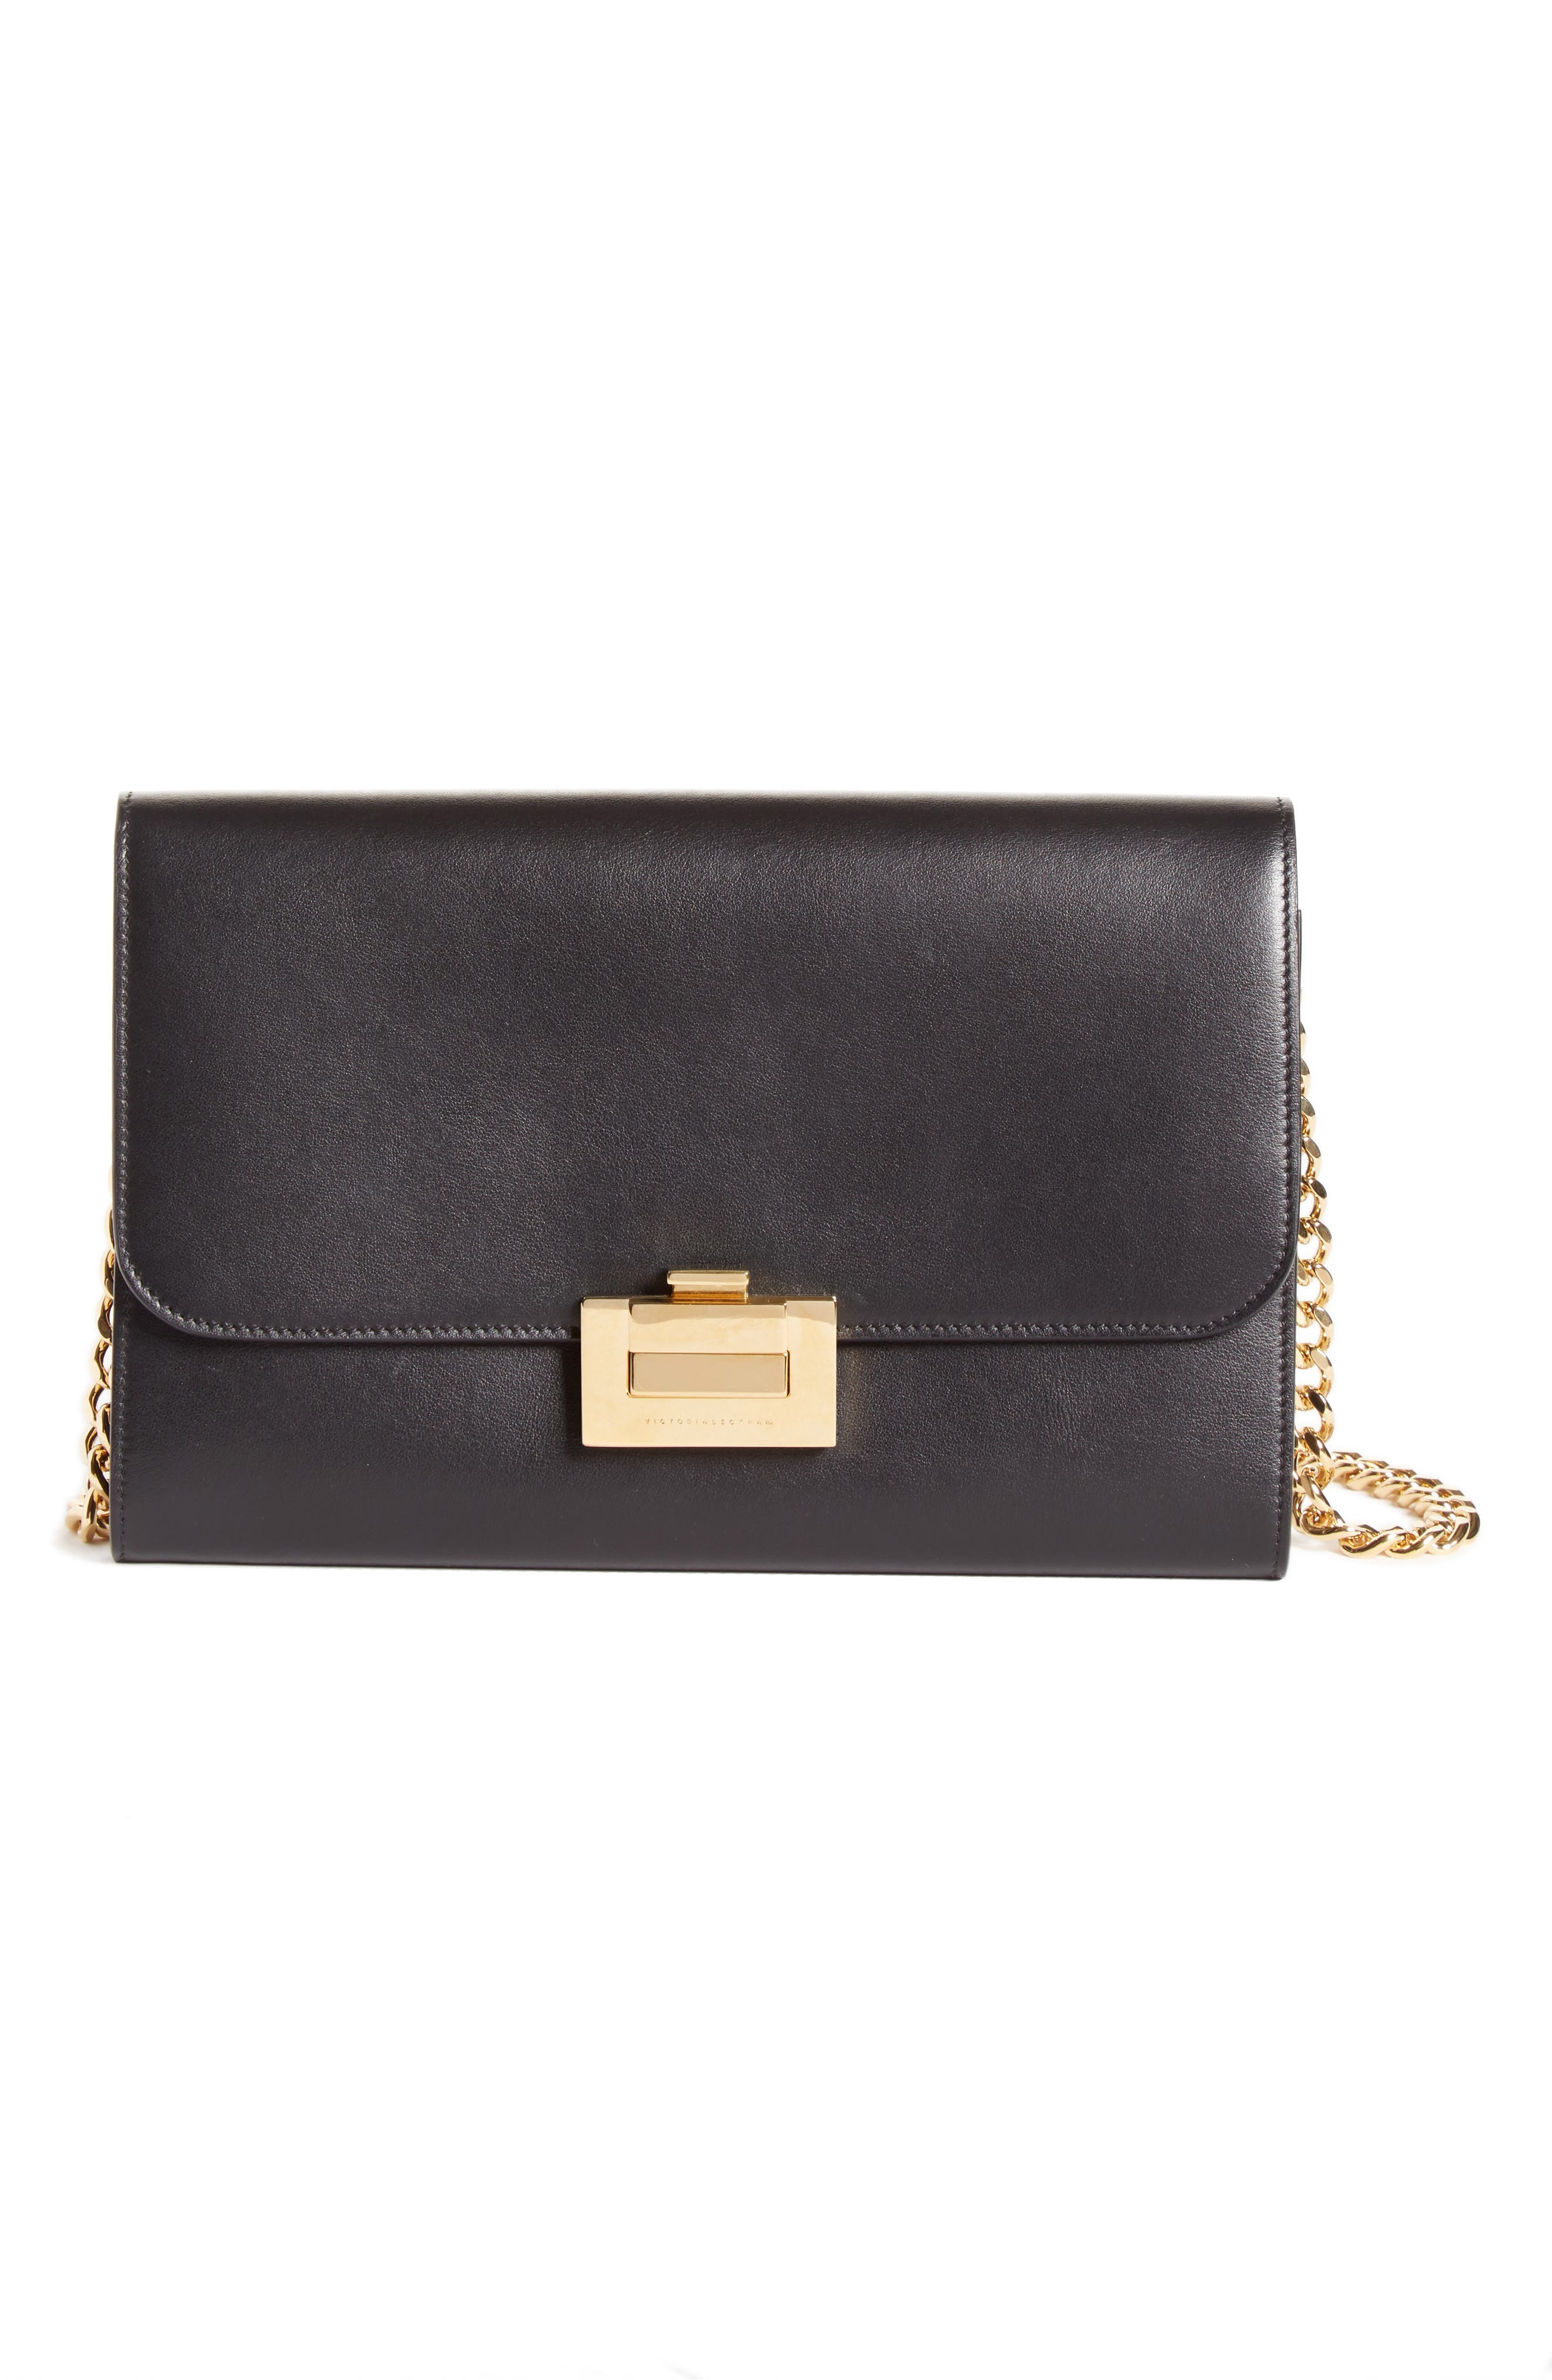 VICTORIA BECKHAM Leather Wallet on a Chain, Main, color, BLACK